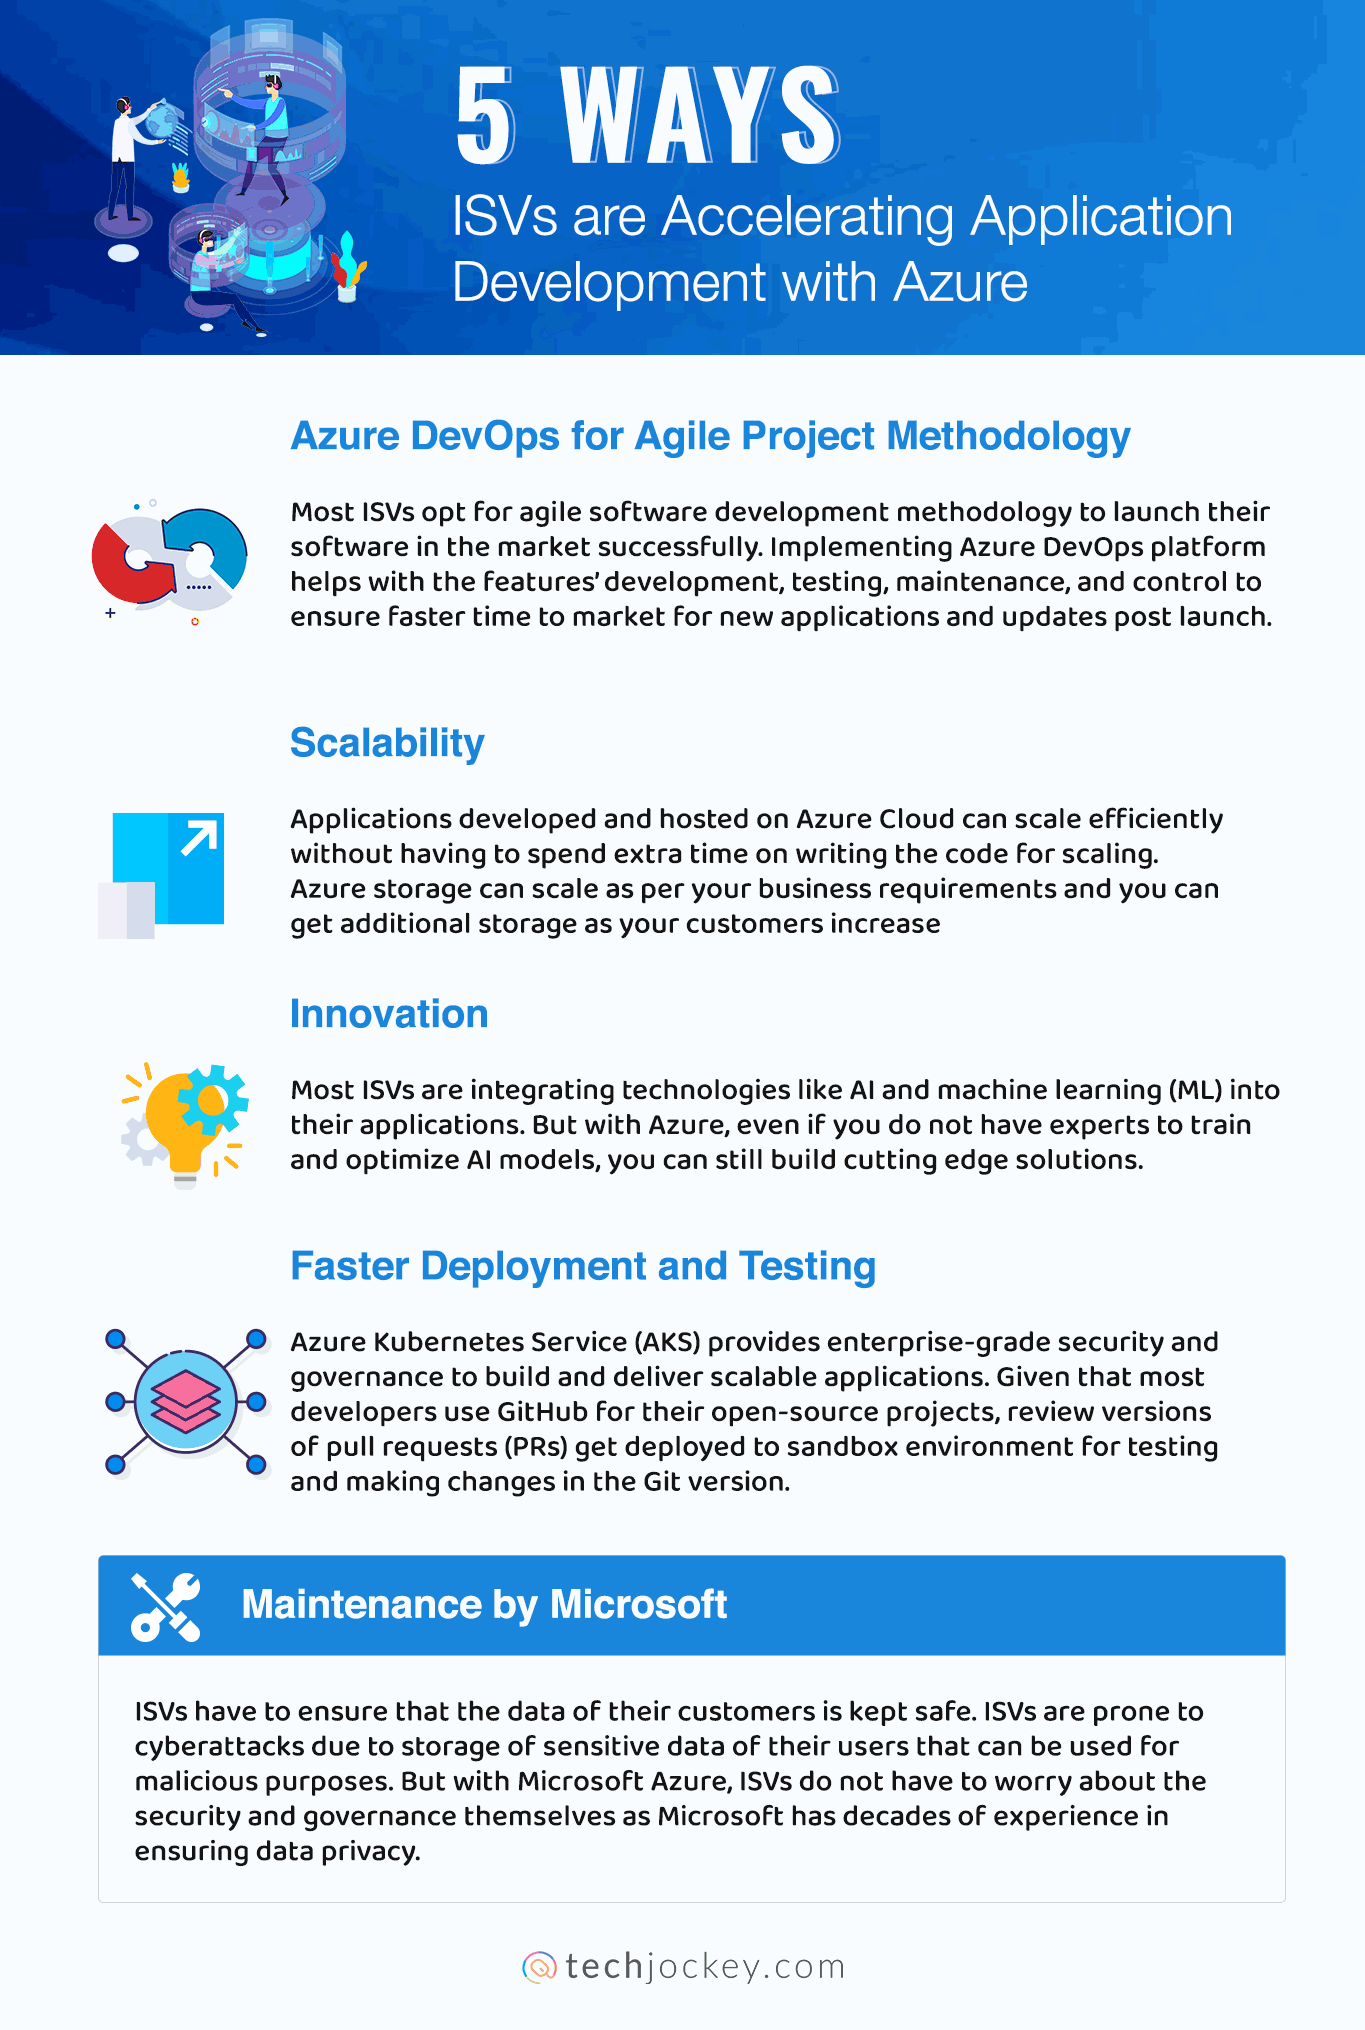 5 Ways ISVs are Accelerating Application Development with Azure